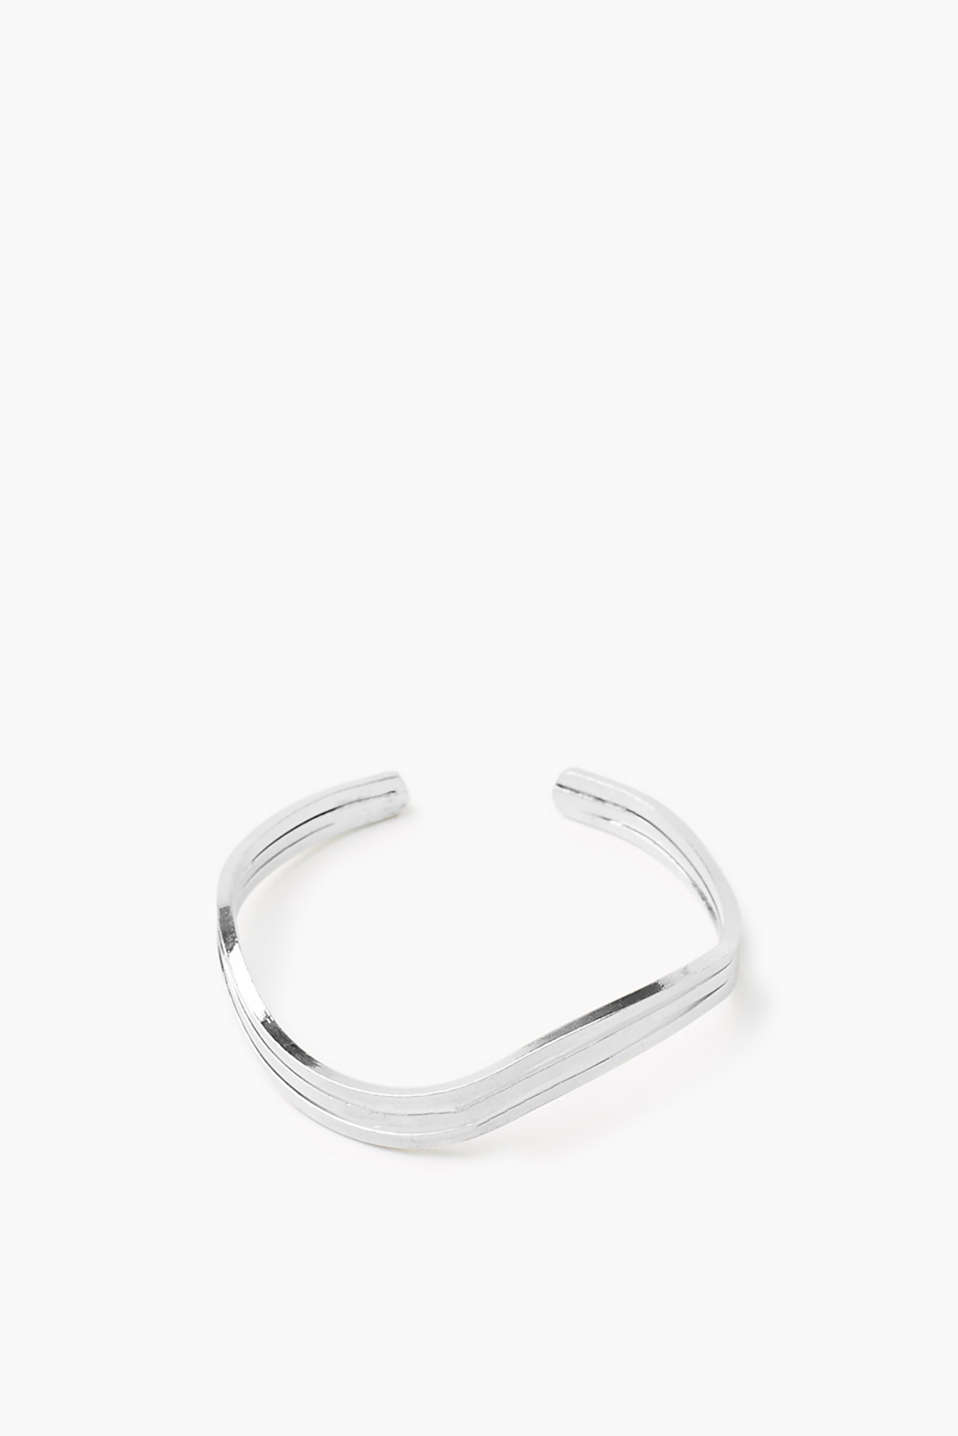 In a minimalist design: open bracelet in high-quality metal alloy